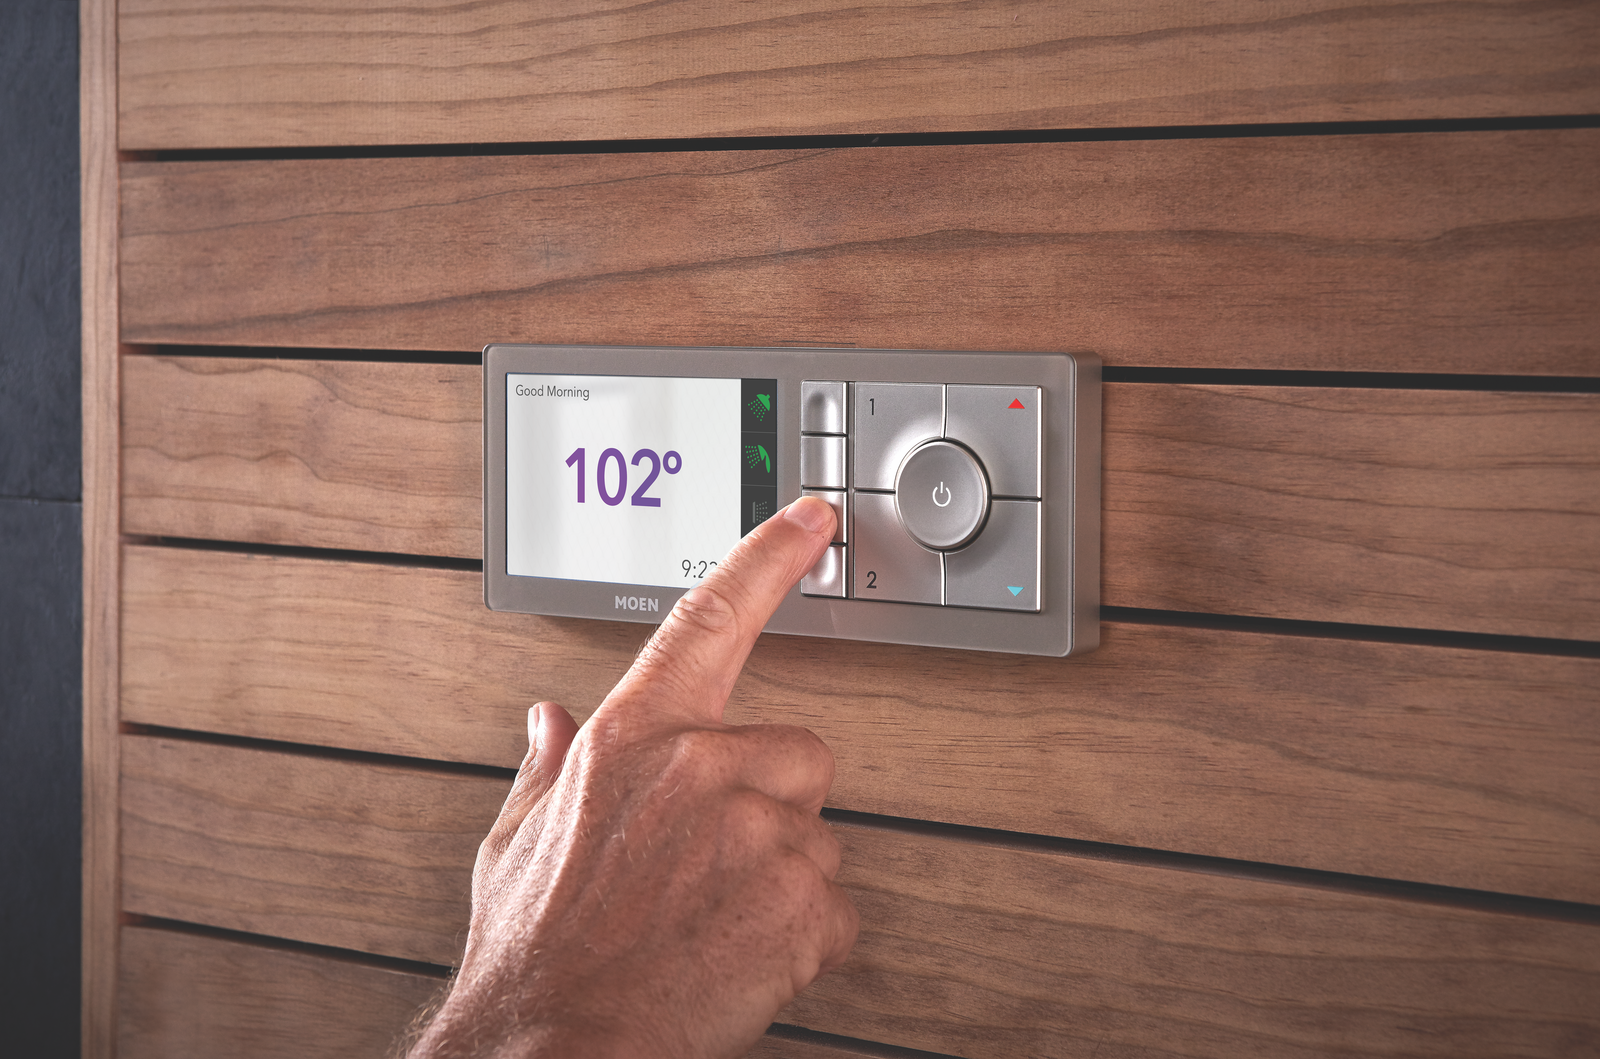 Large, intuitive-to-use buttons save your presets on the U by Moen controller, which is designed to blend into a variety of bathroom styles.  Photo 6 of 6 in Turn Your Bathroom Into a Private Sanctuary With These Upgrades